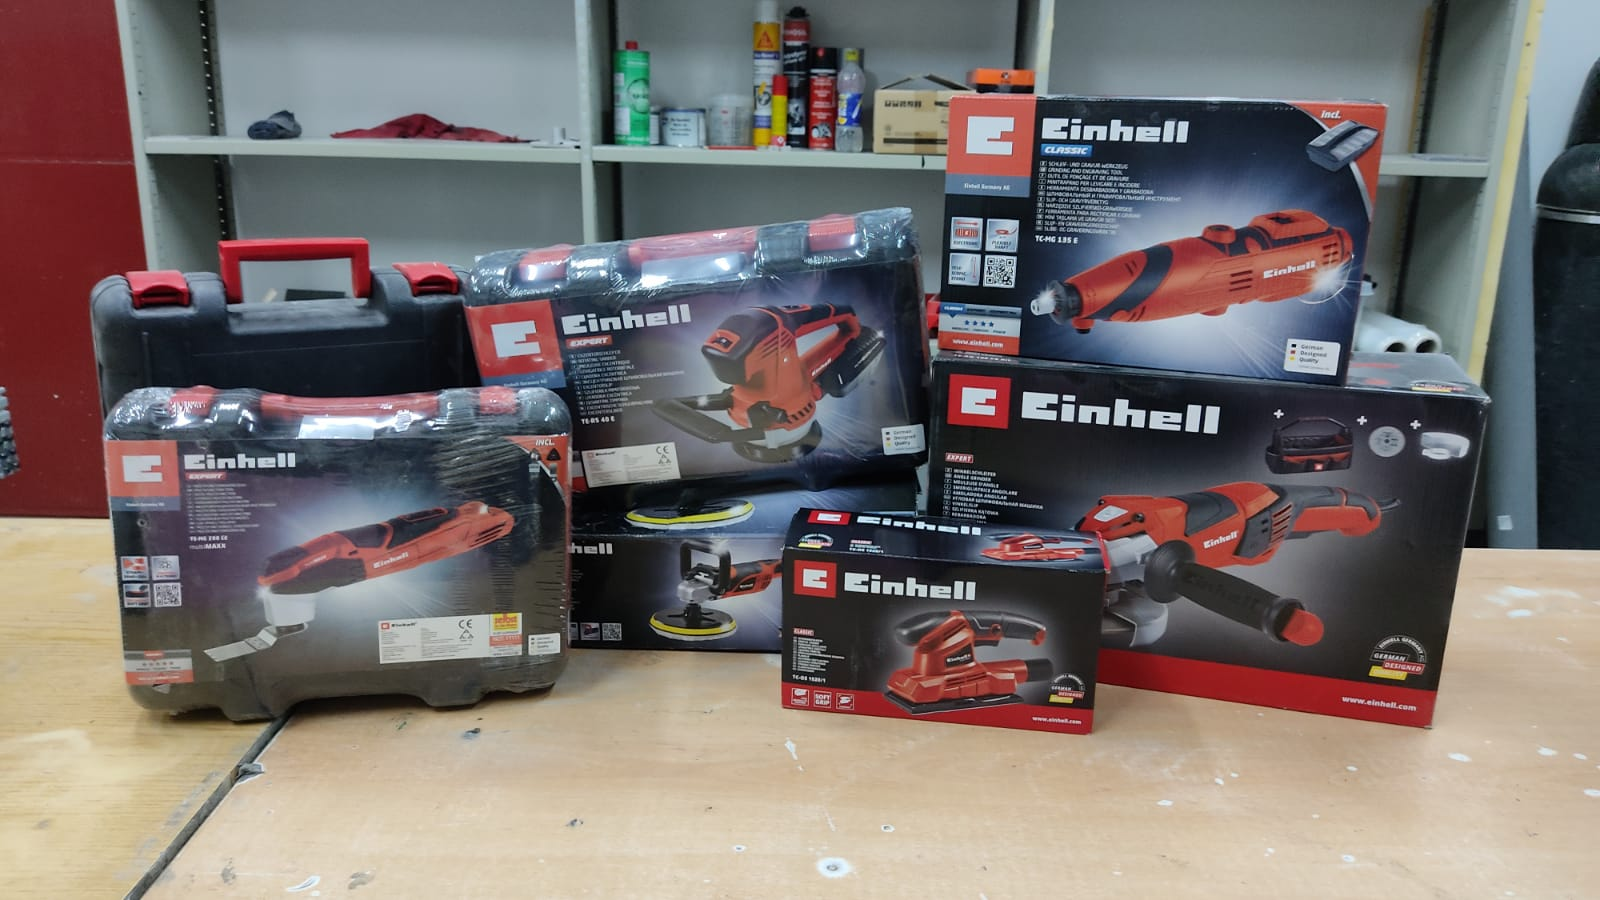 Continued collaboration with the company Einhell